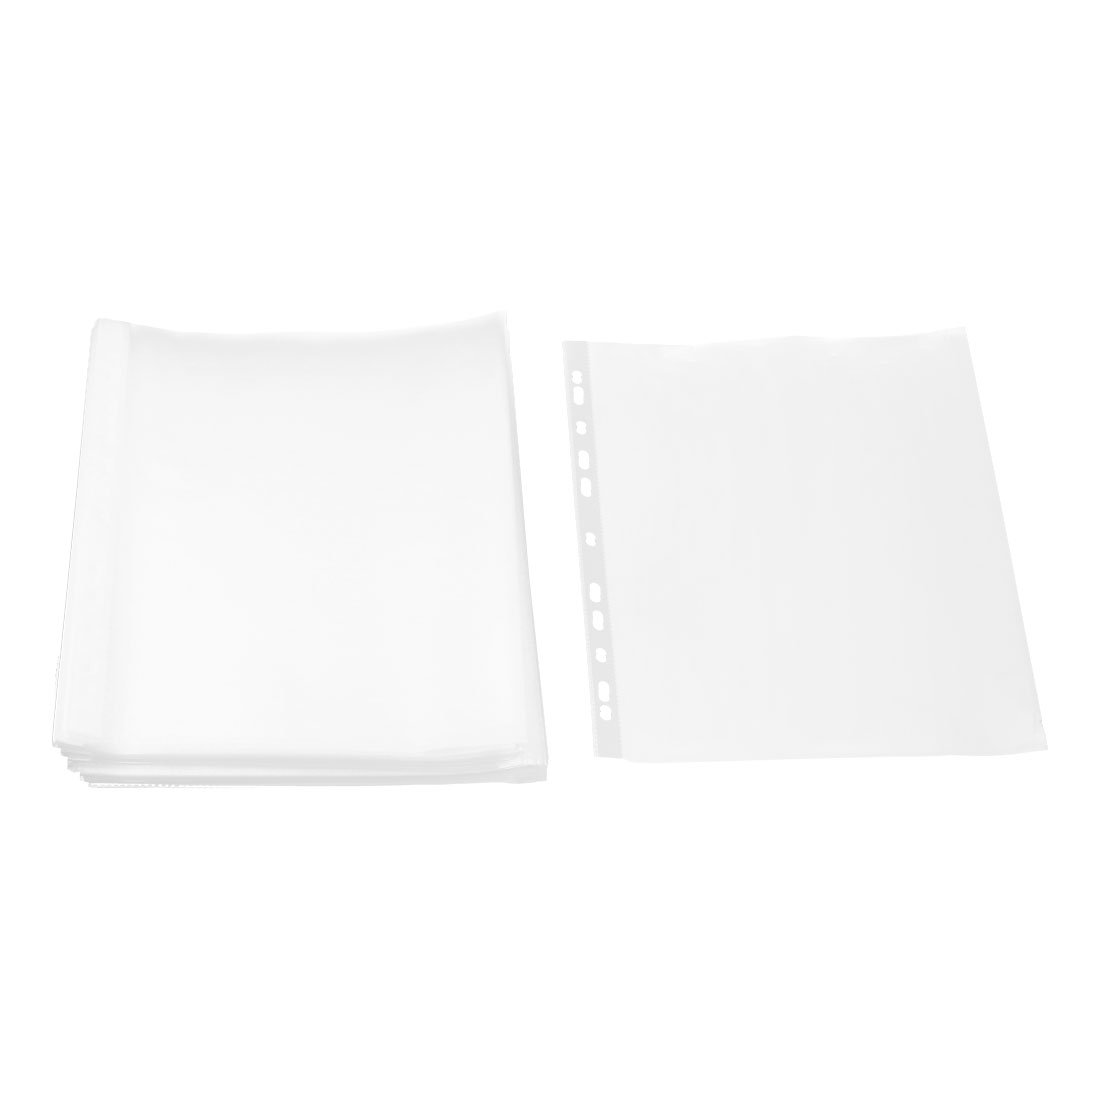 uxcell Plastic School Square Shaped File A4 Paper Storage Sheet Protector 0.05cm Thickness 100pcs Clear